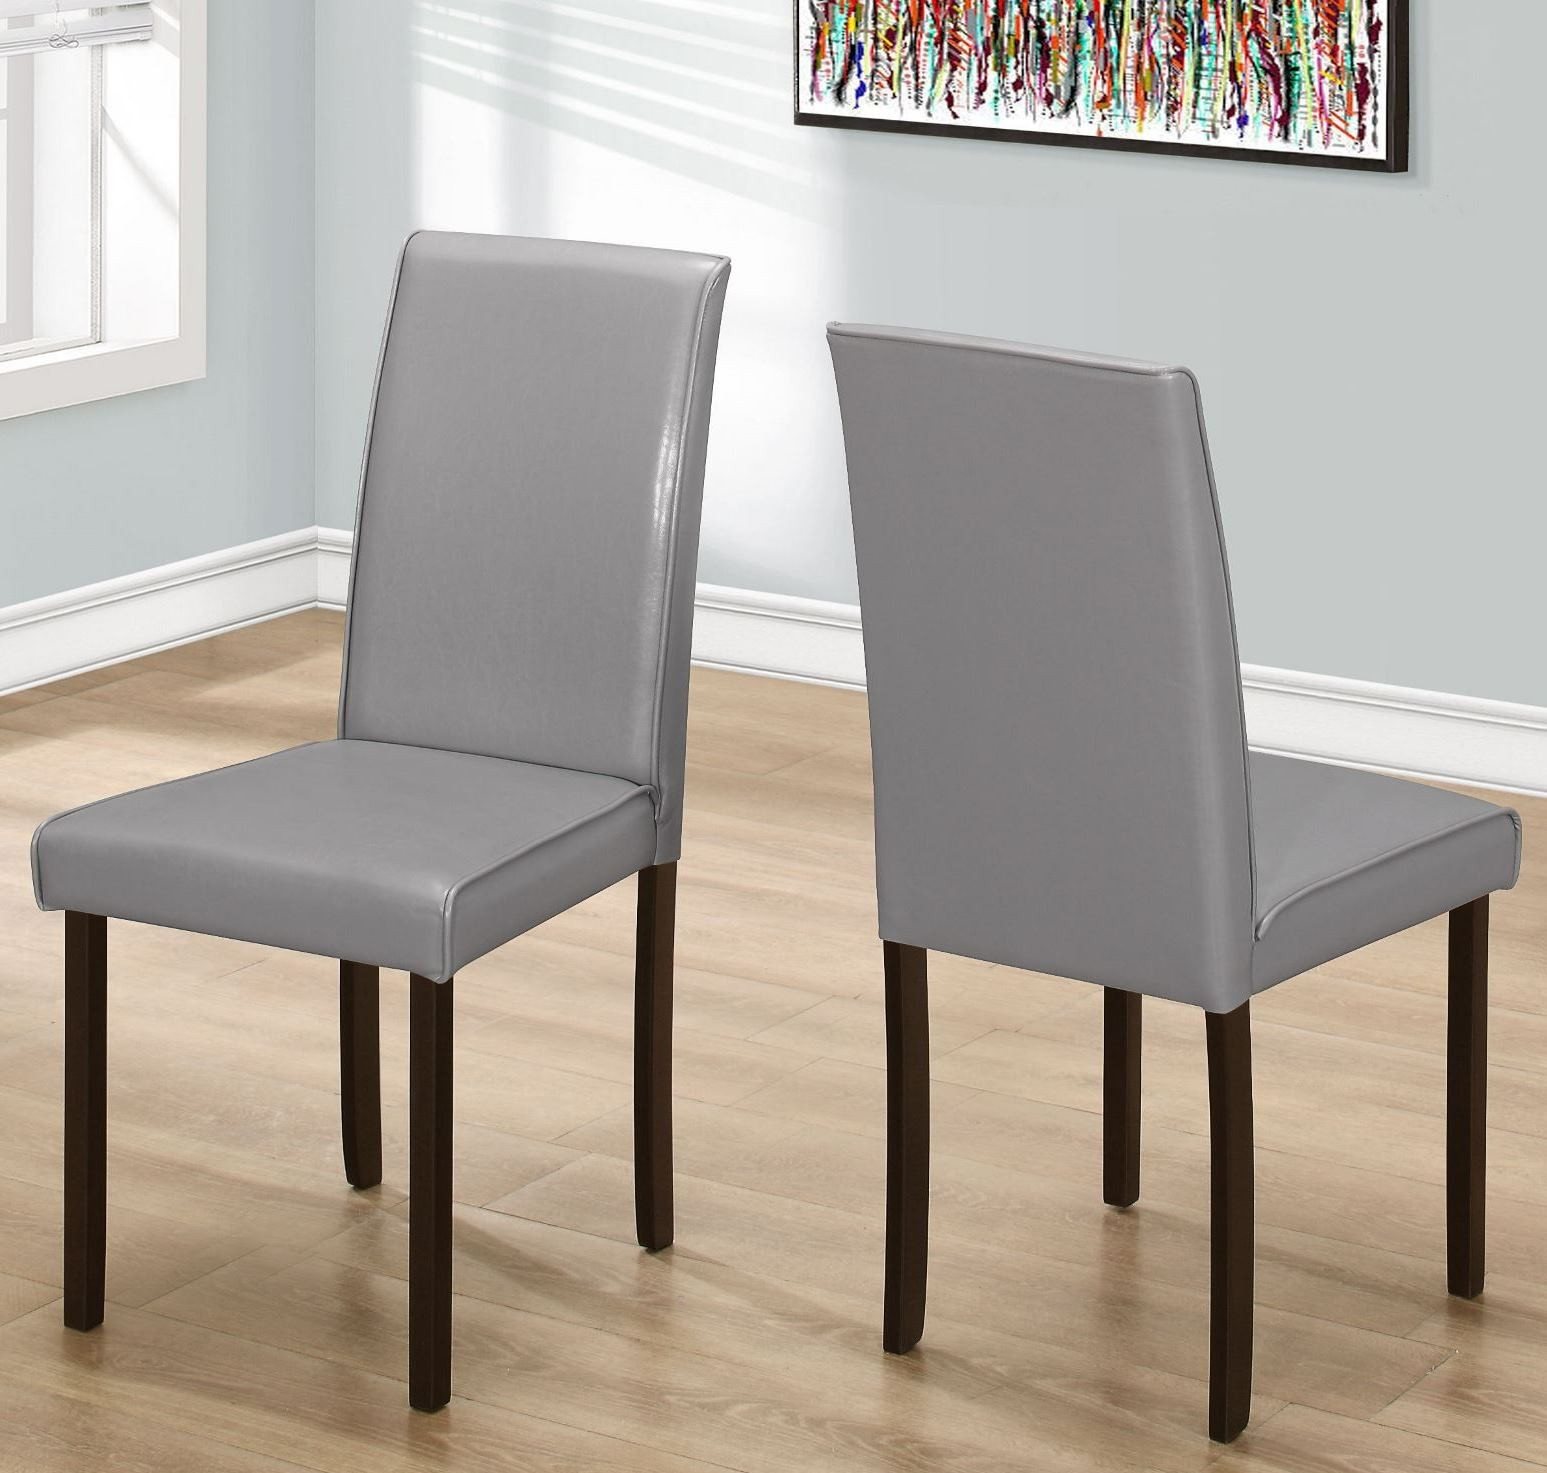 gray leather 36 dining chair set of 2 from monarch coleman furniture. Black Bedroom Furniture Sets. Home Design Ideas